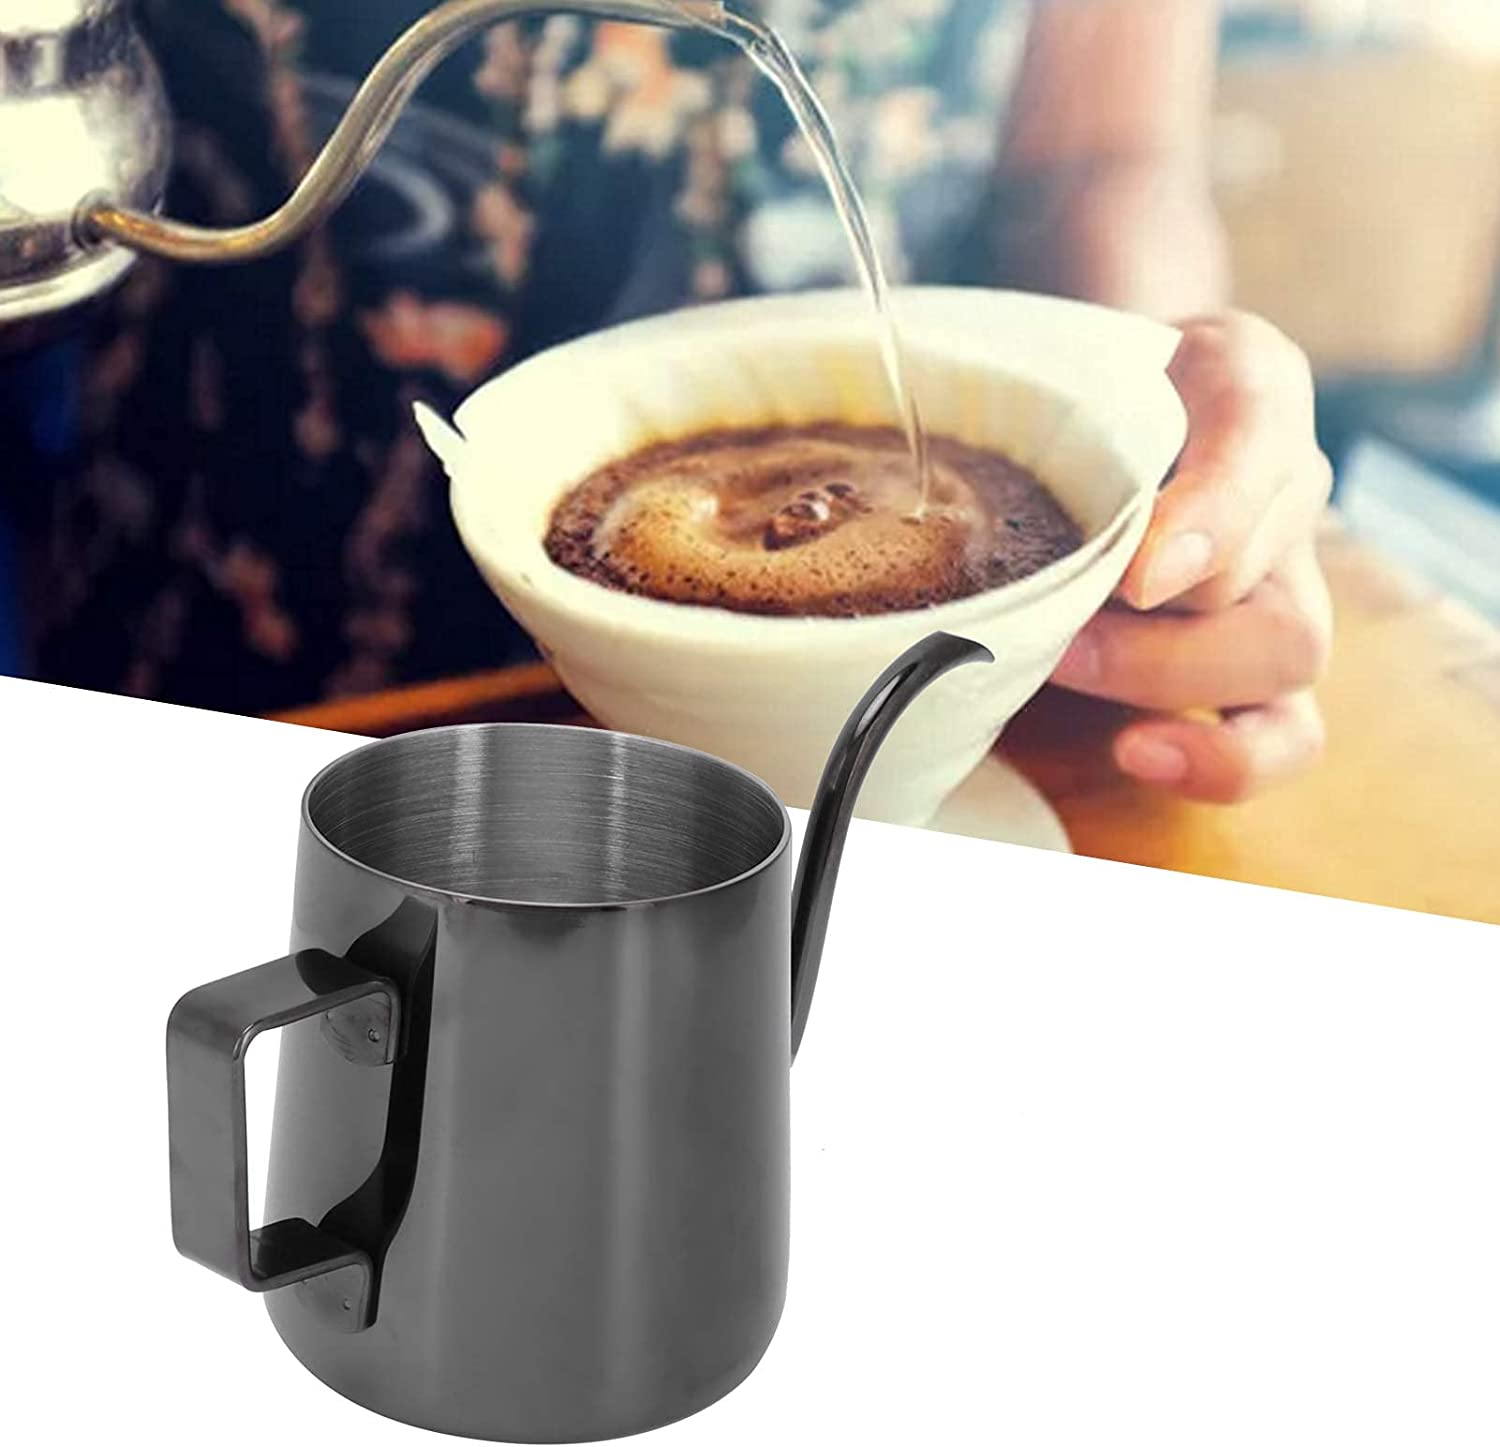 Popular products 01 Coffee Kettle 240ml Home 5 ☆ popular Pot Restaurant for